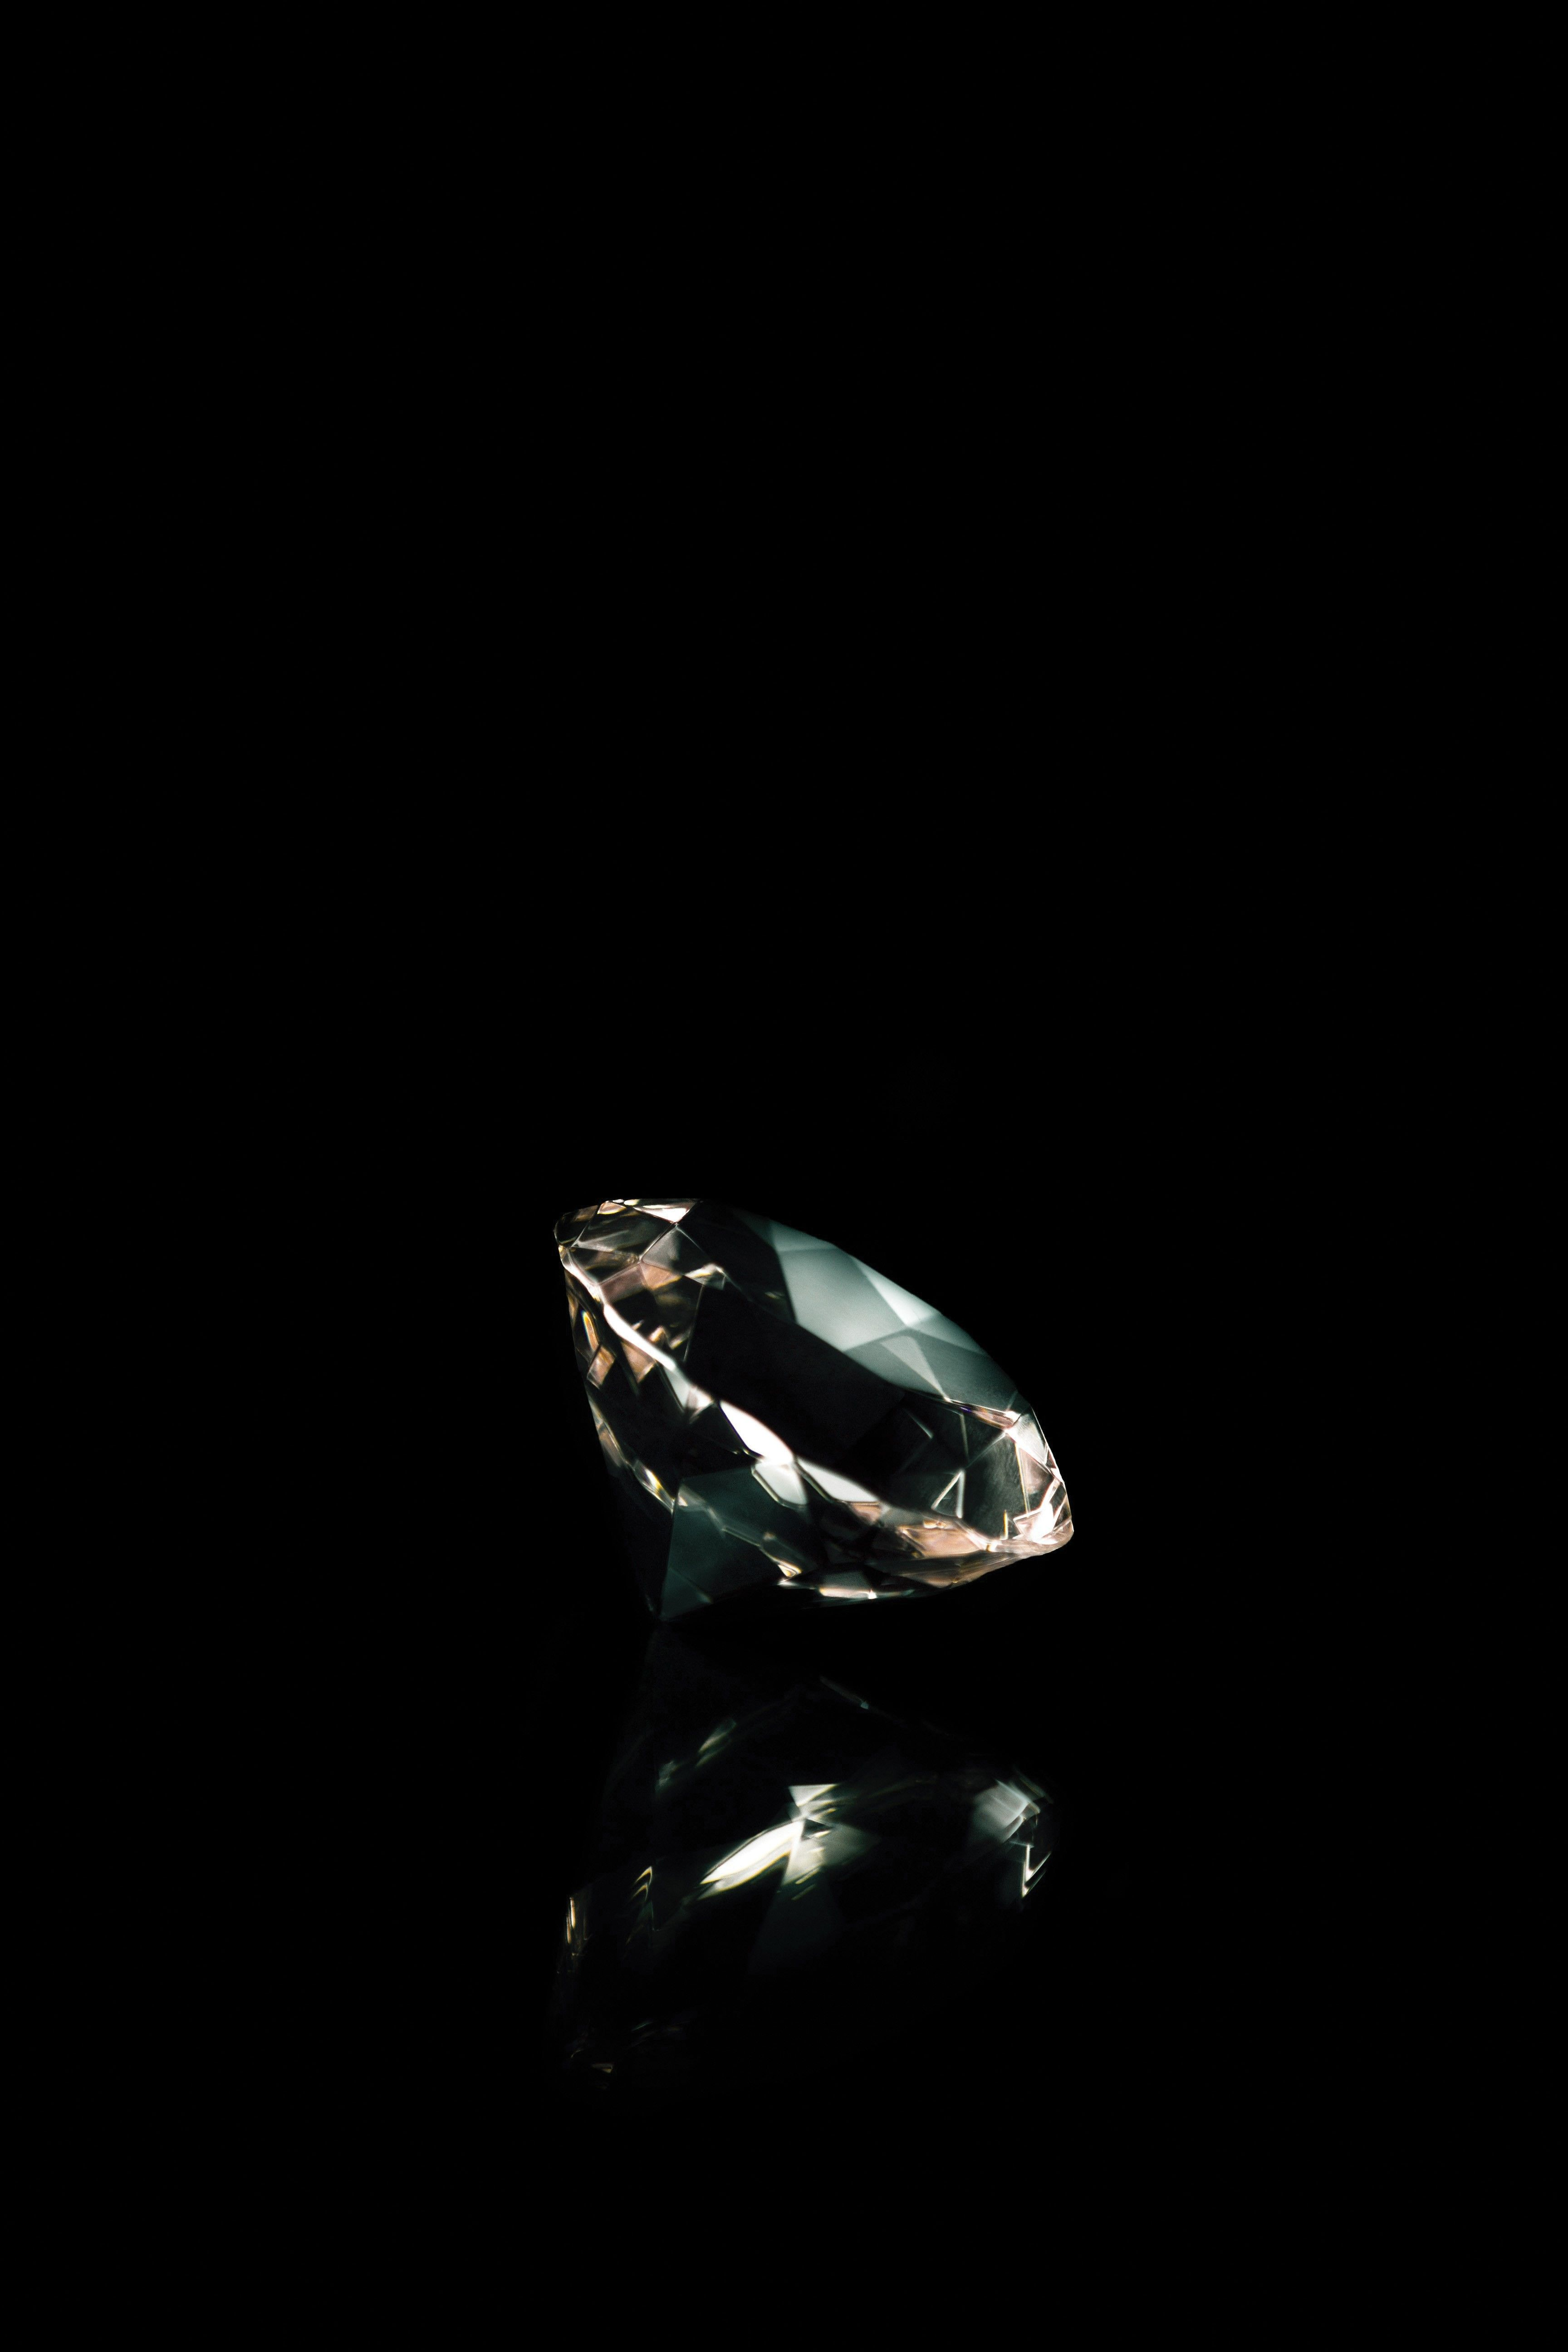 A diamond photographed against a black background.